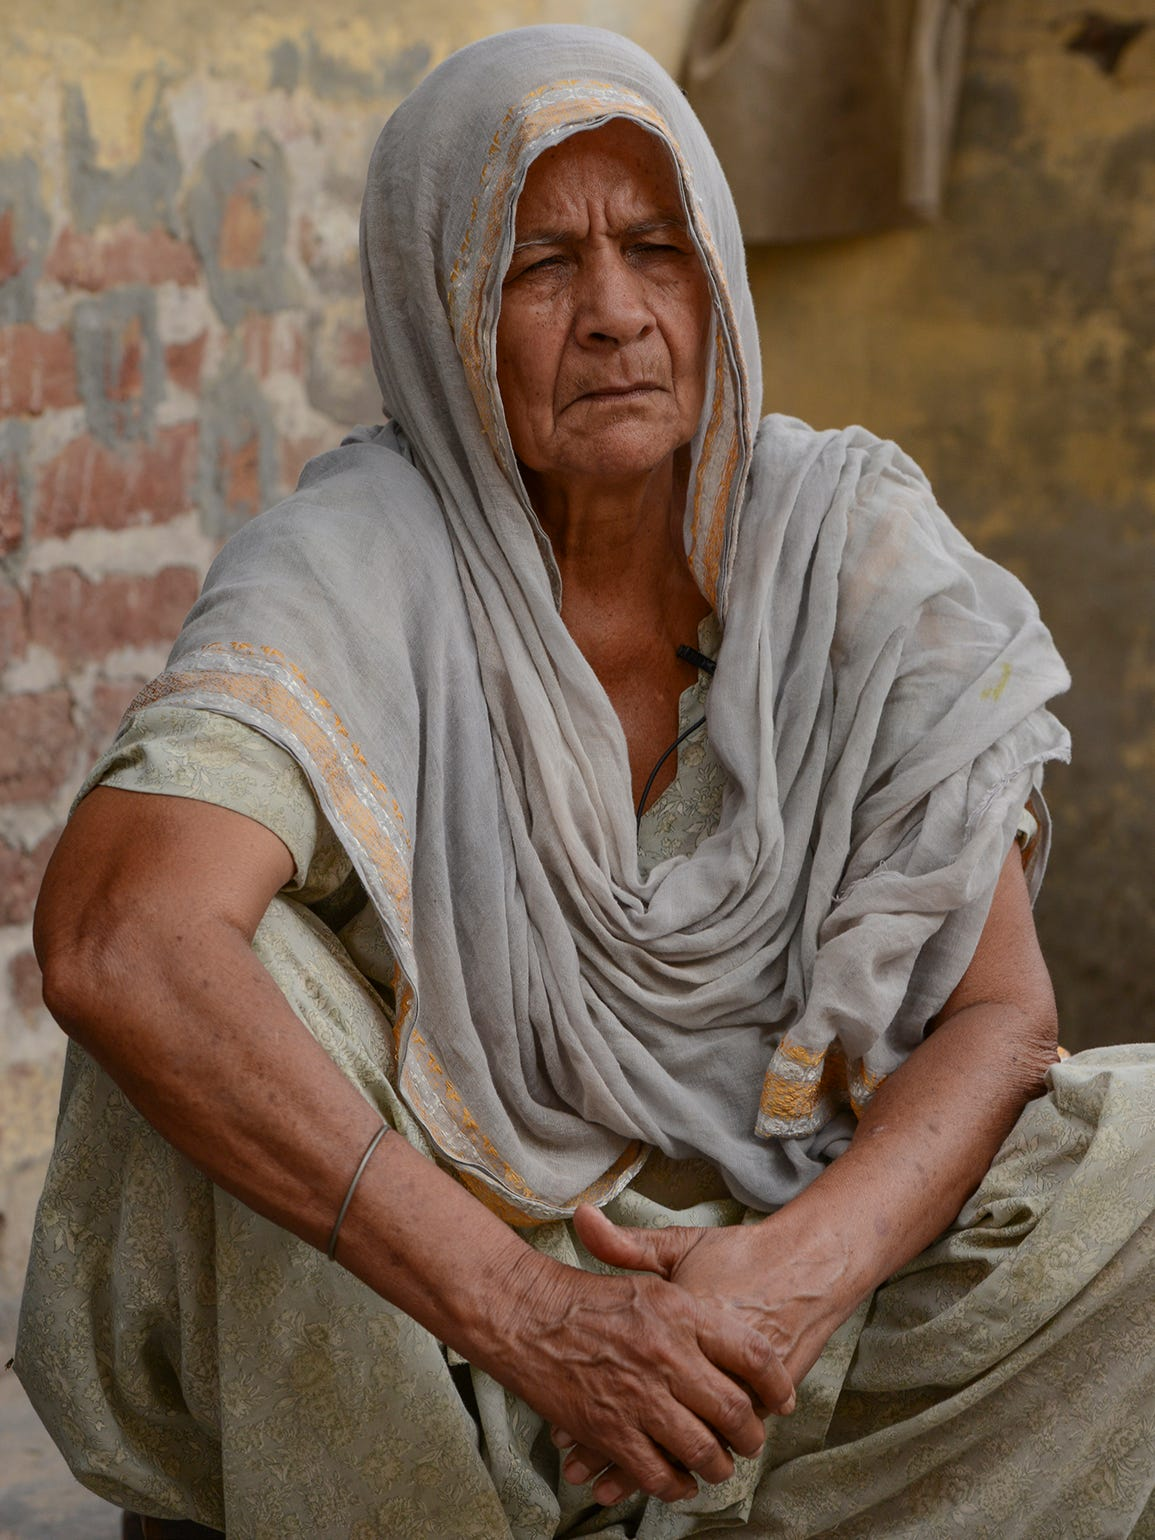 Paraminder Kaur reflects on the declining levels of